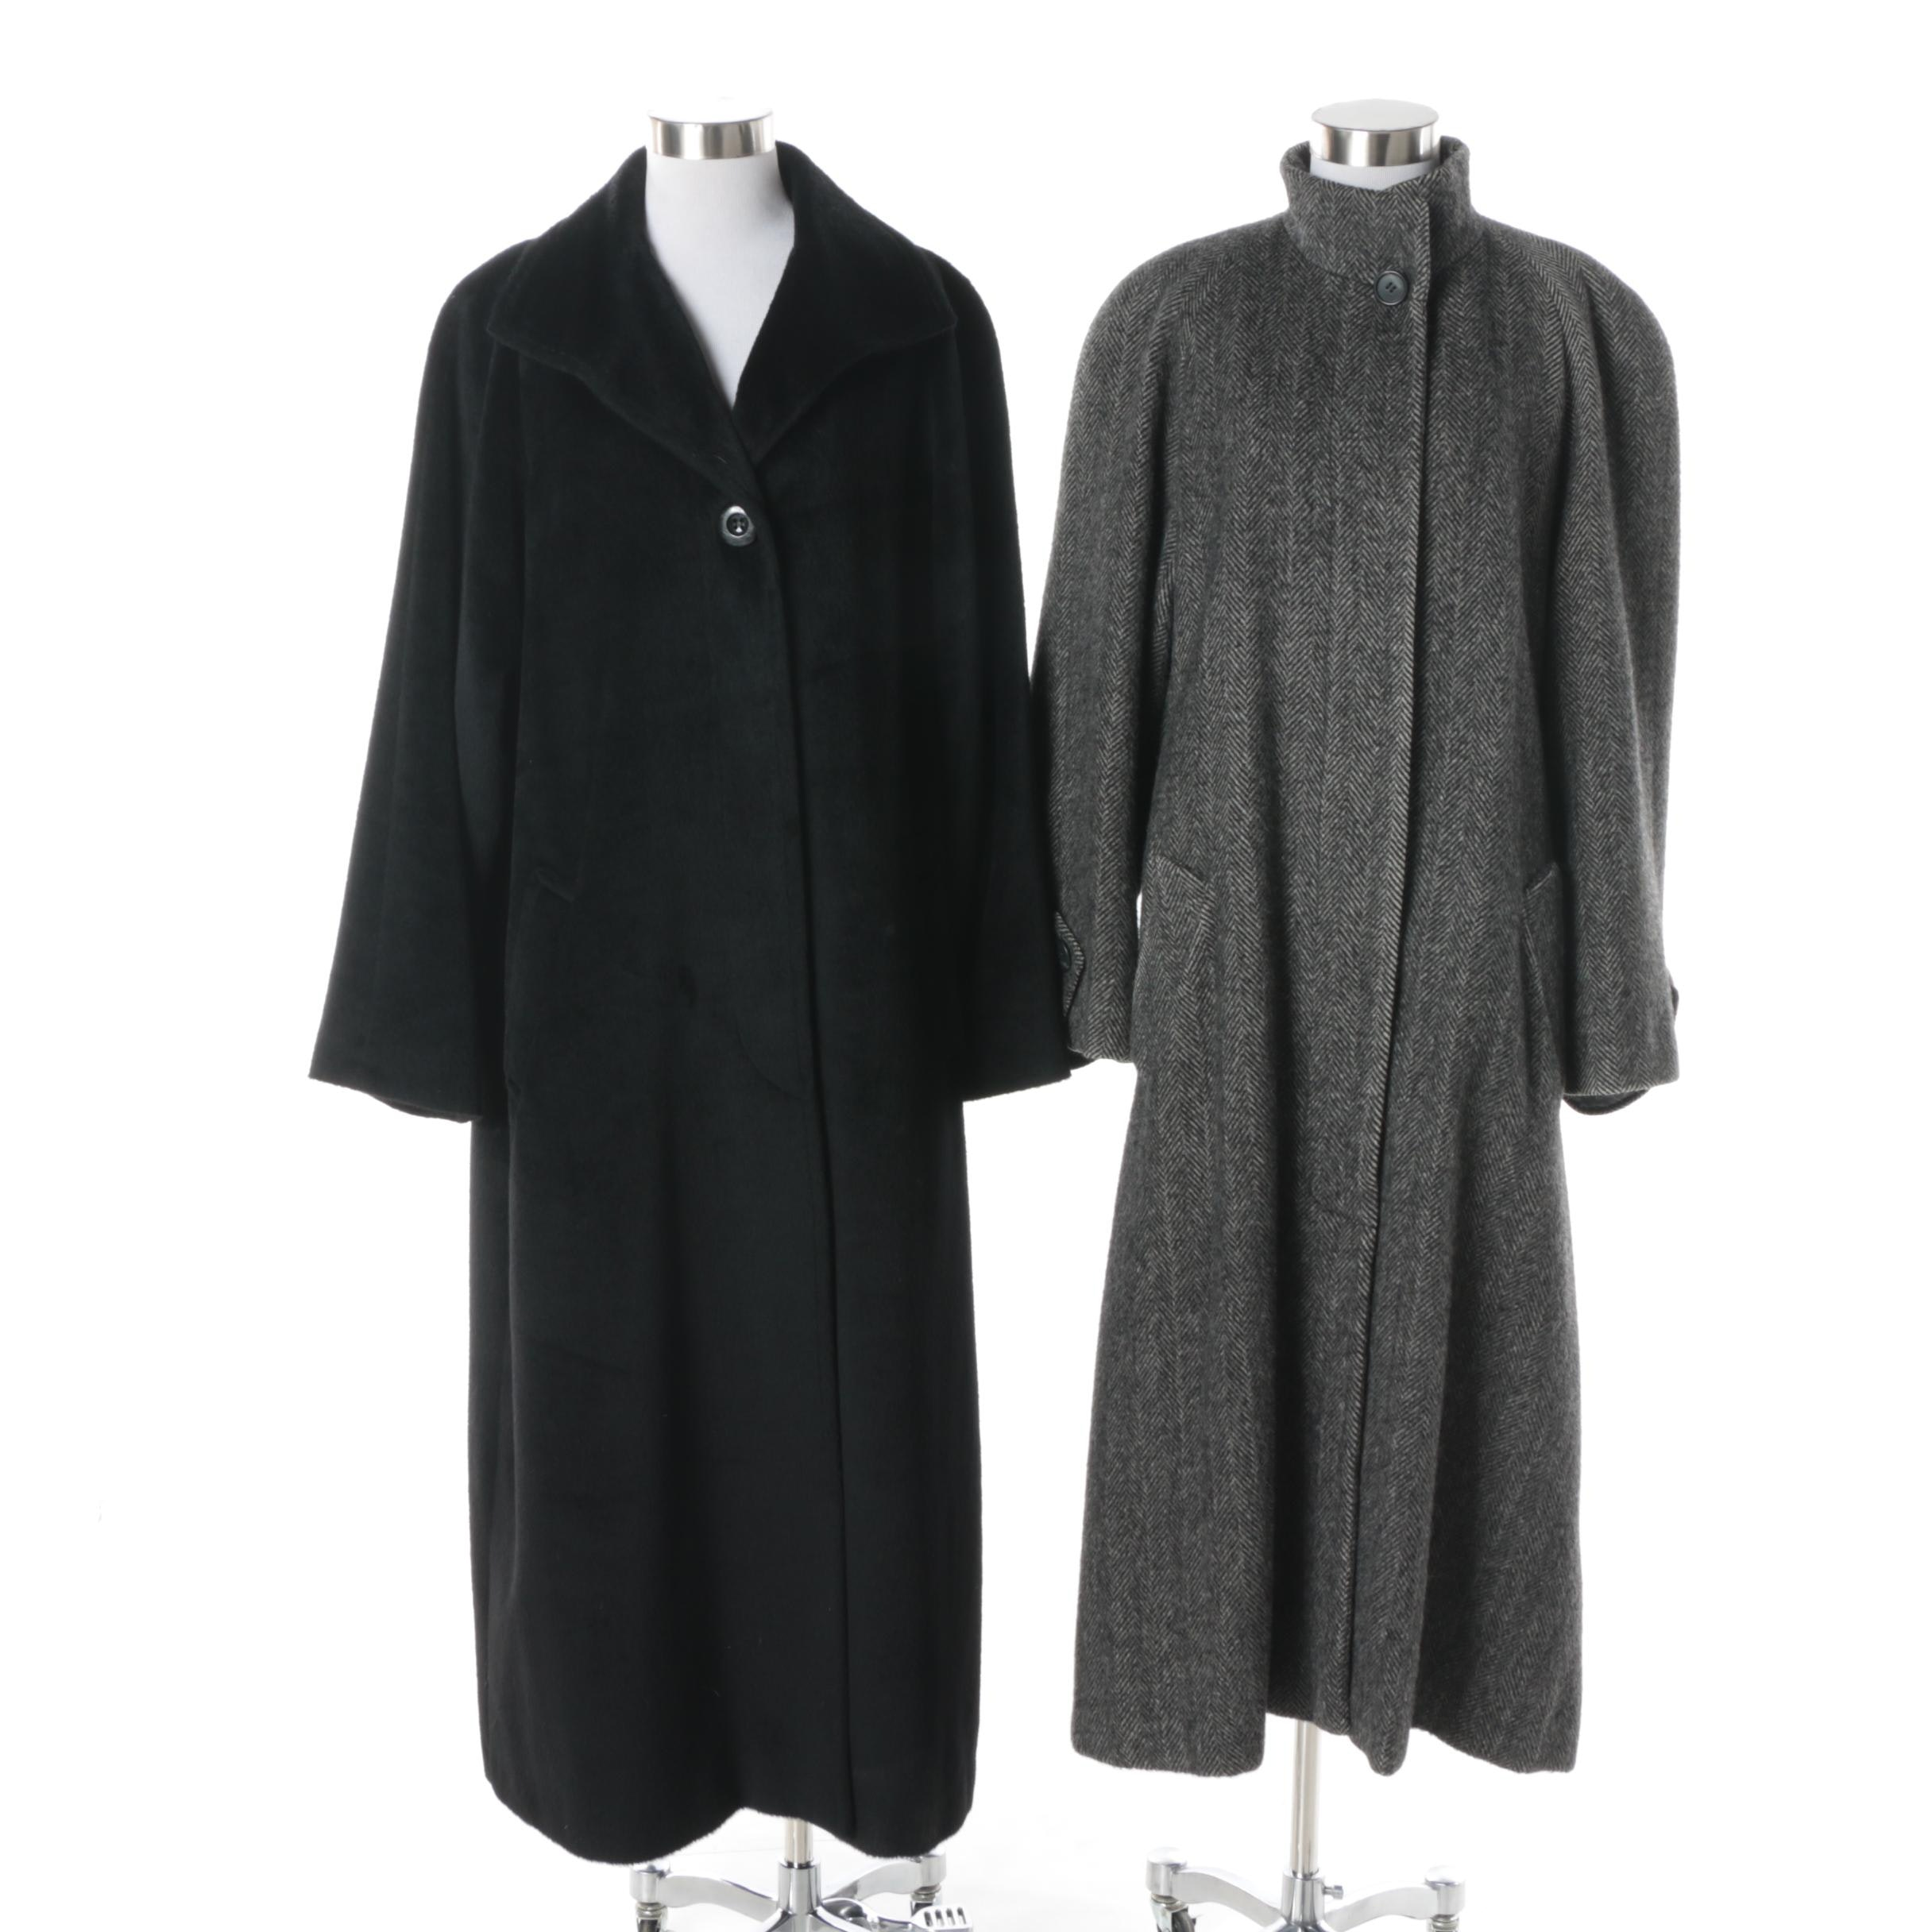 Women's Perry Ellis and Jones New York Wool Blend Overcoats